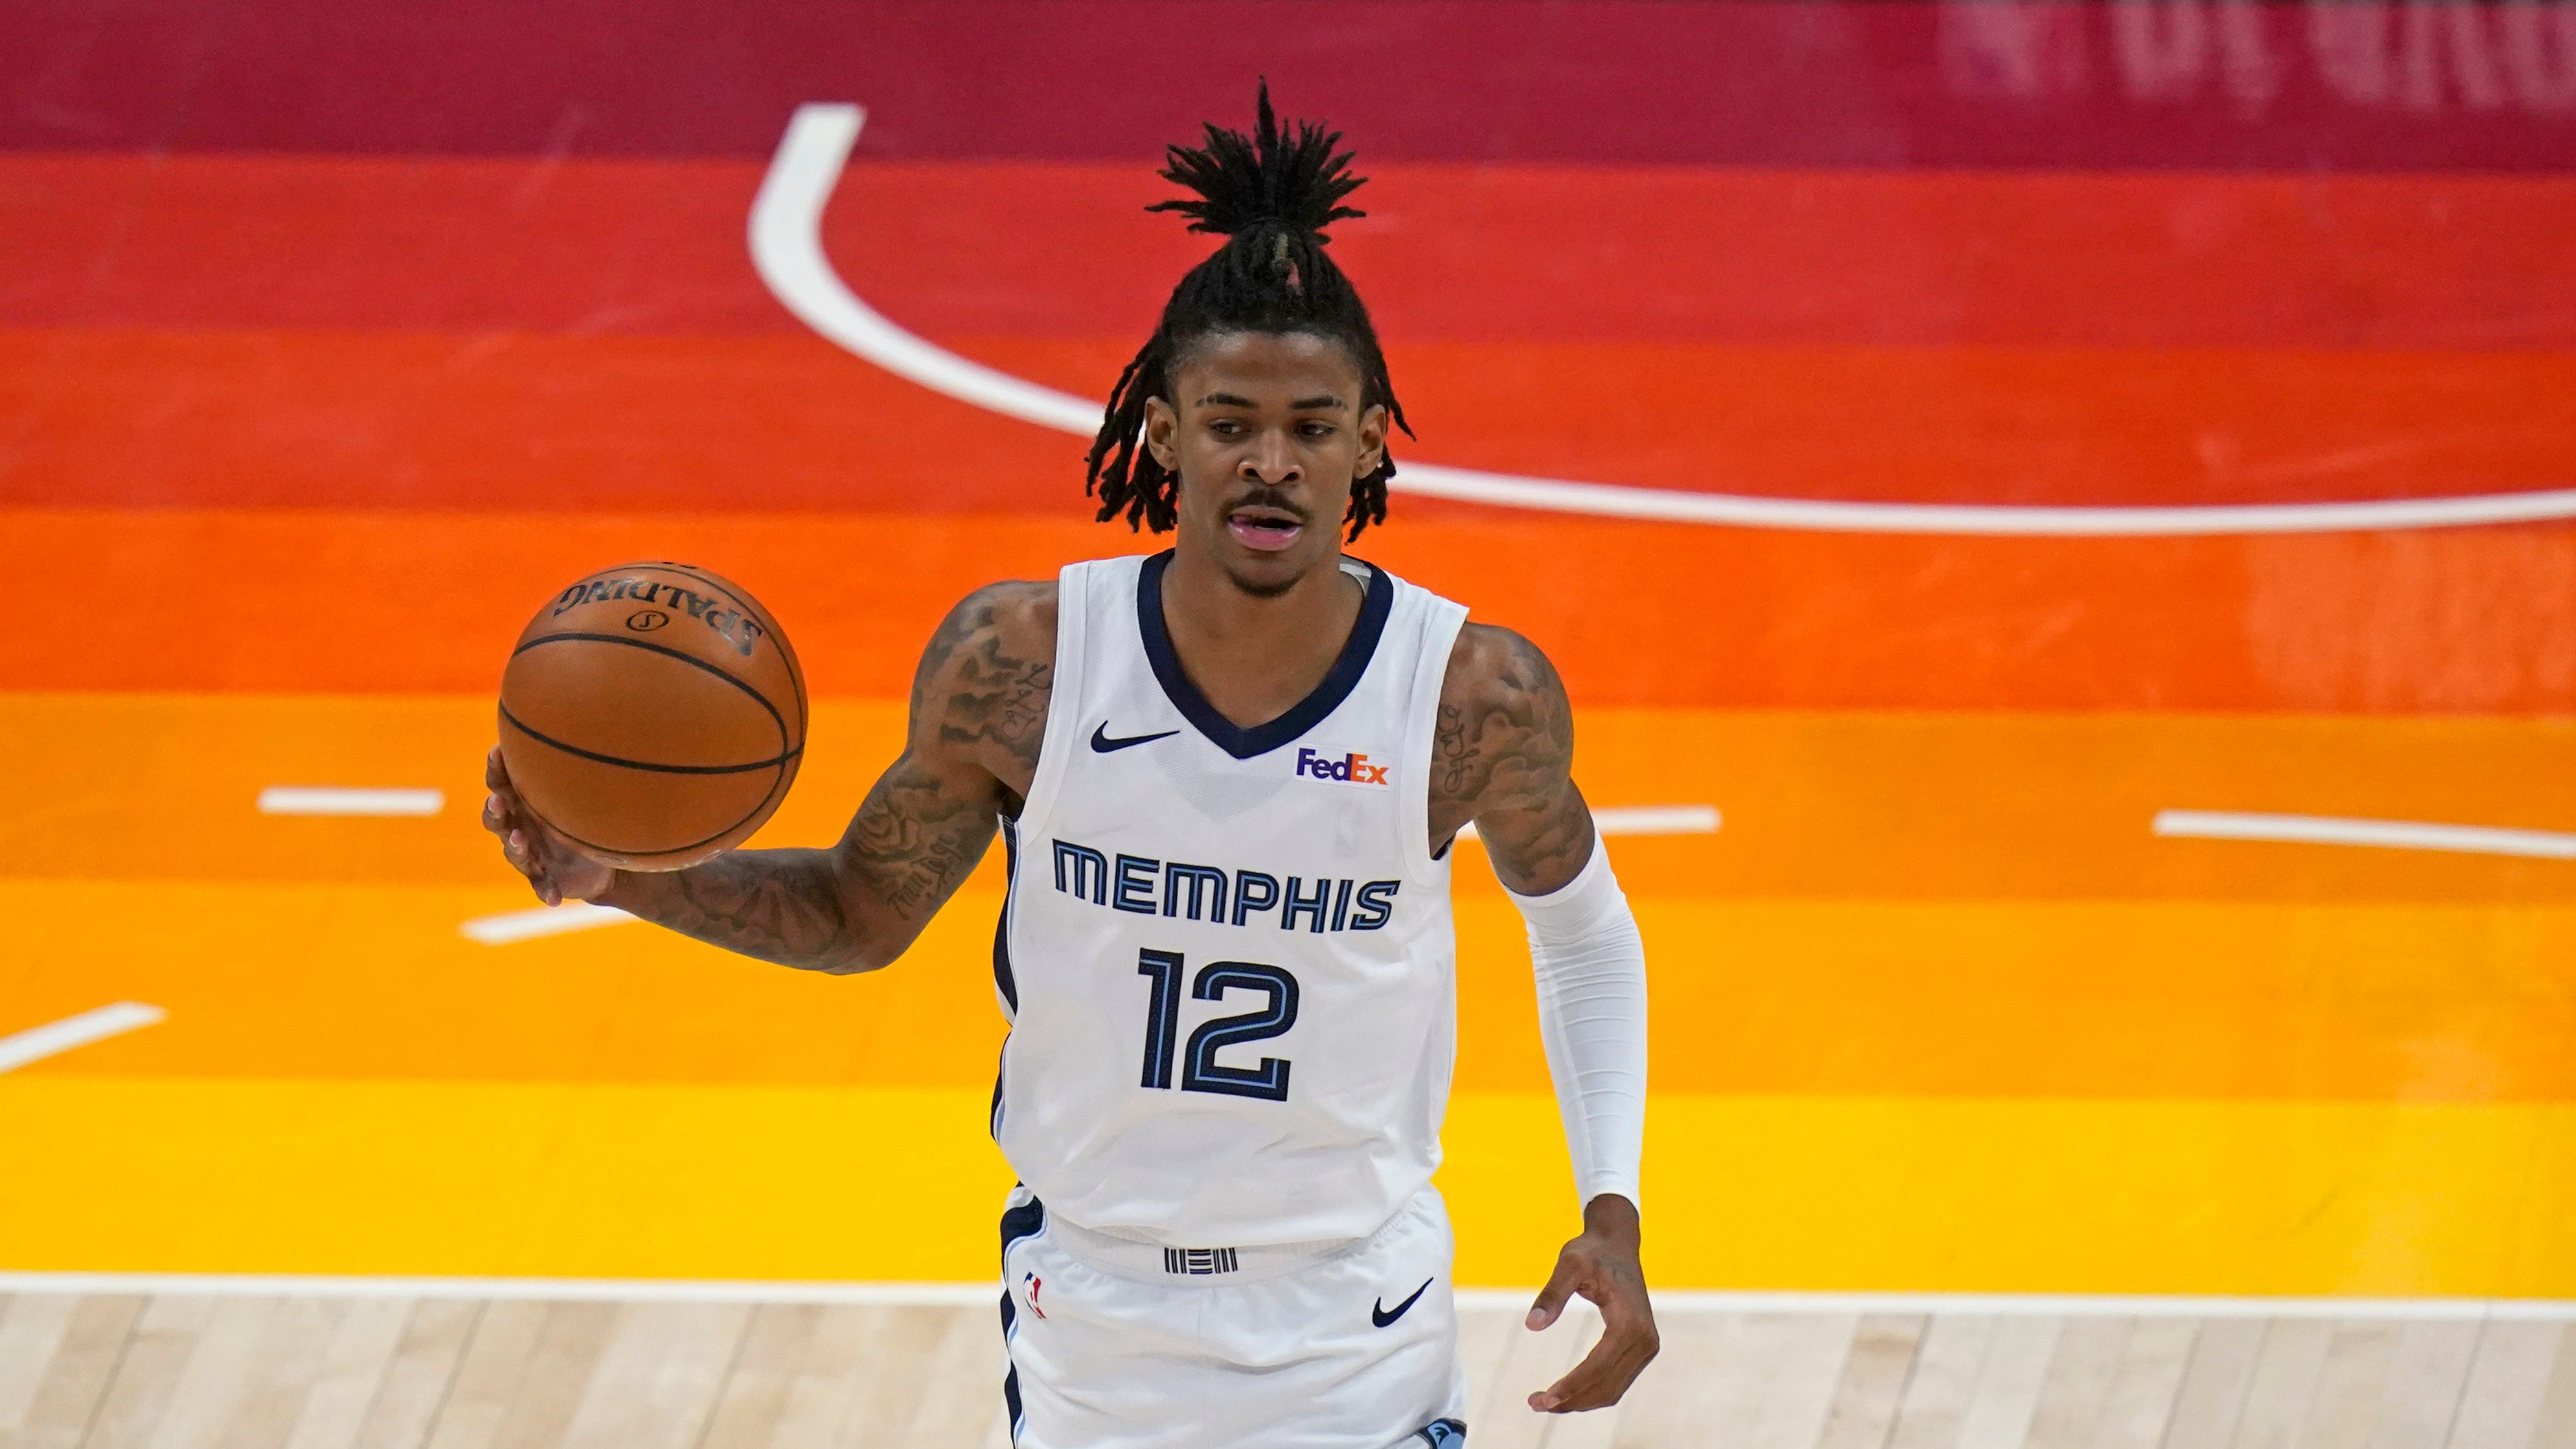 Grizzlies  Ja Morant responds to Jazz fans harassing family with racist, sexist remarks:  It s very unacceptable